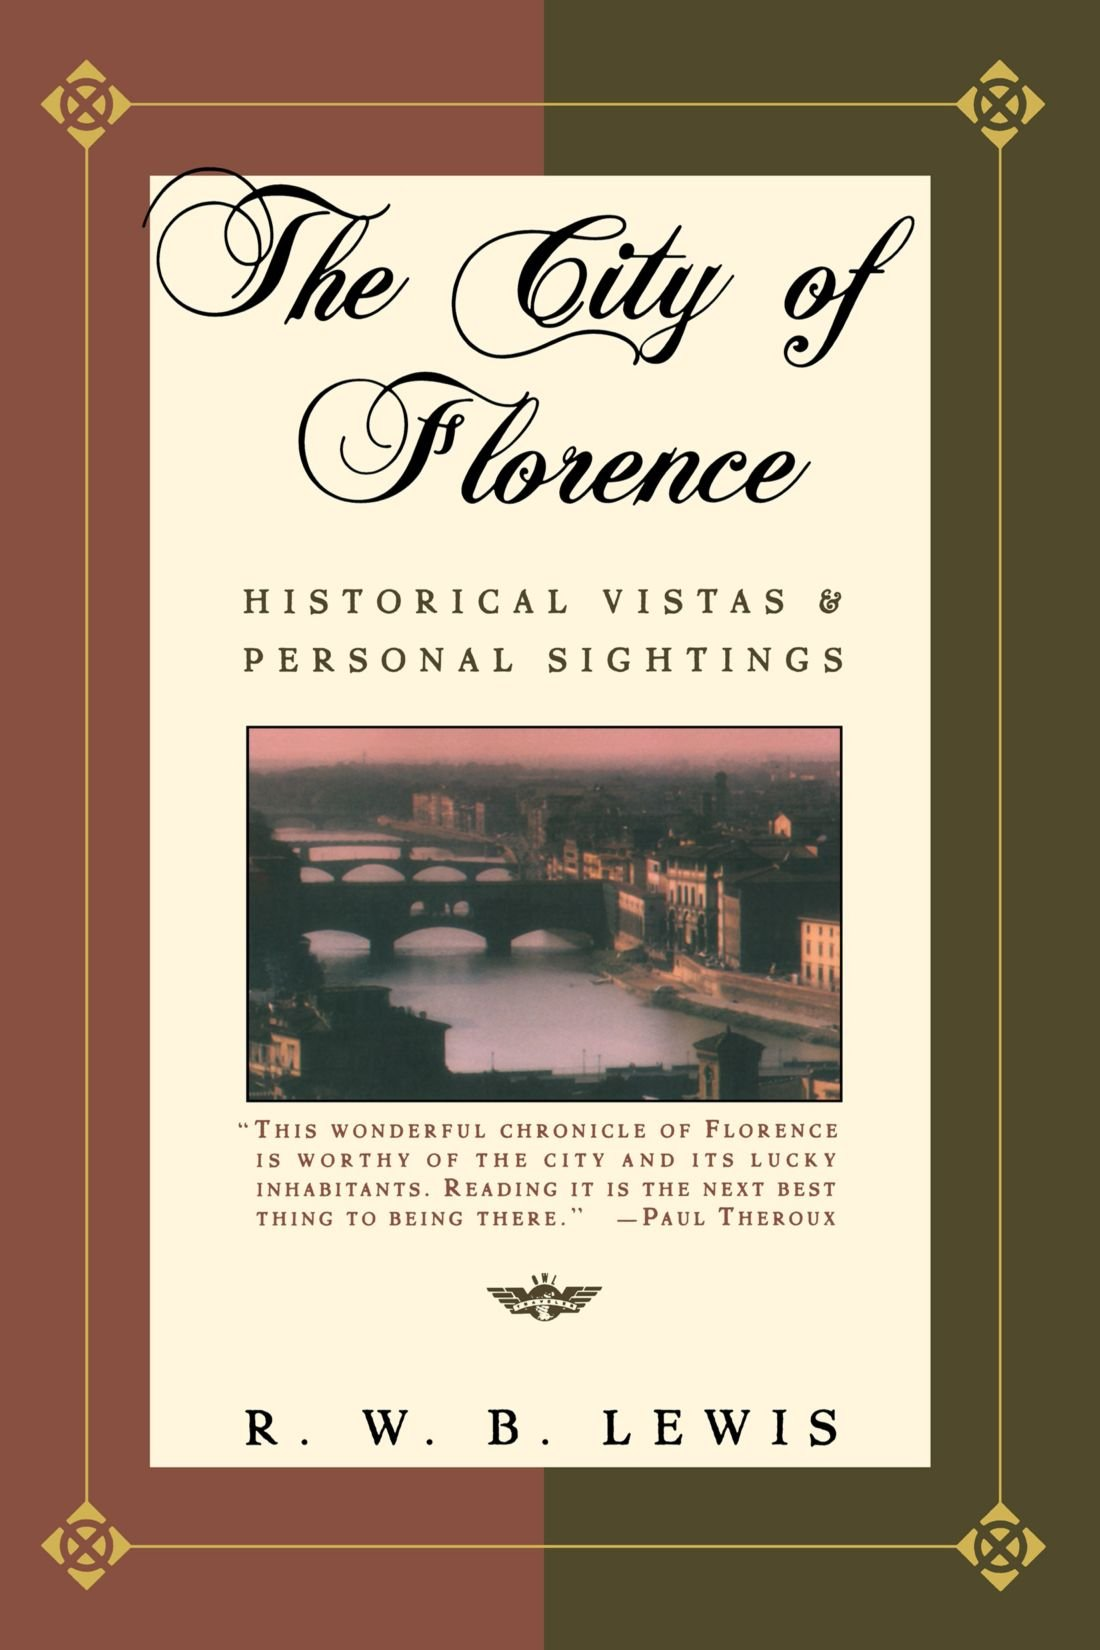 The City of Florence: Historical Vistas and Personal Sightings